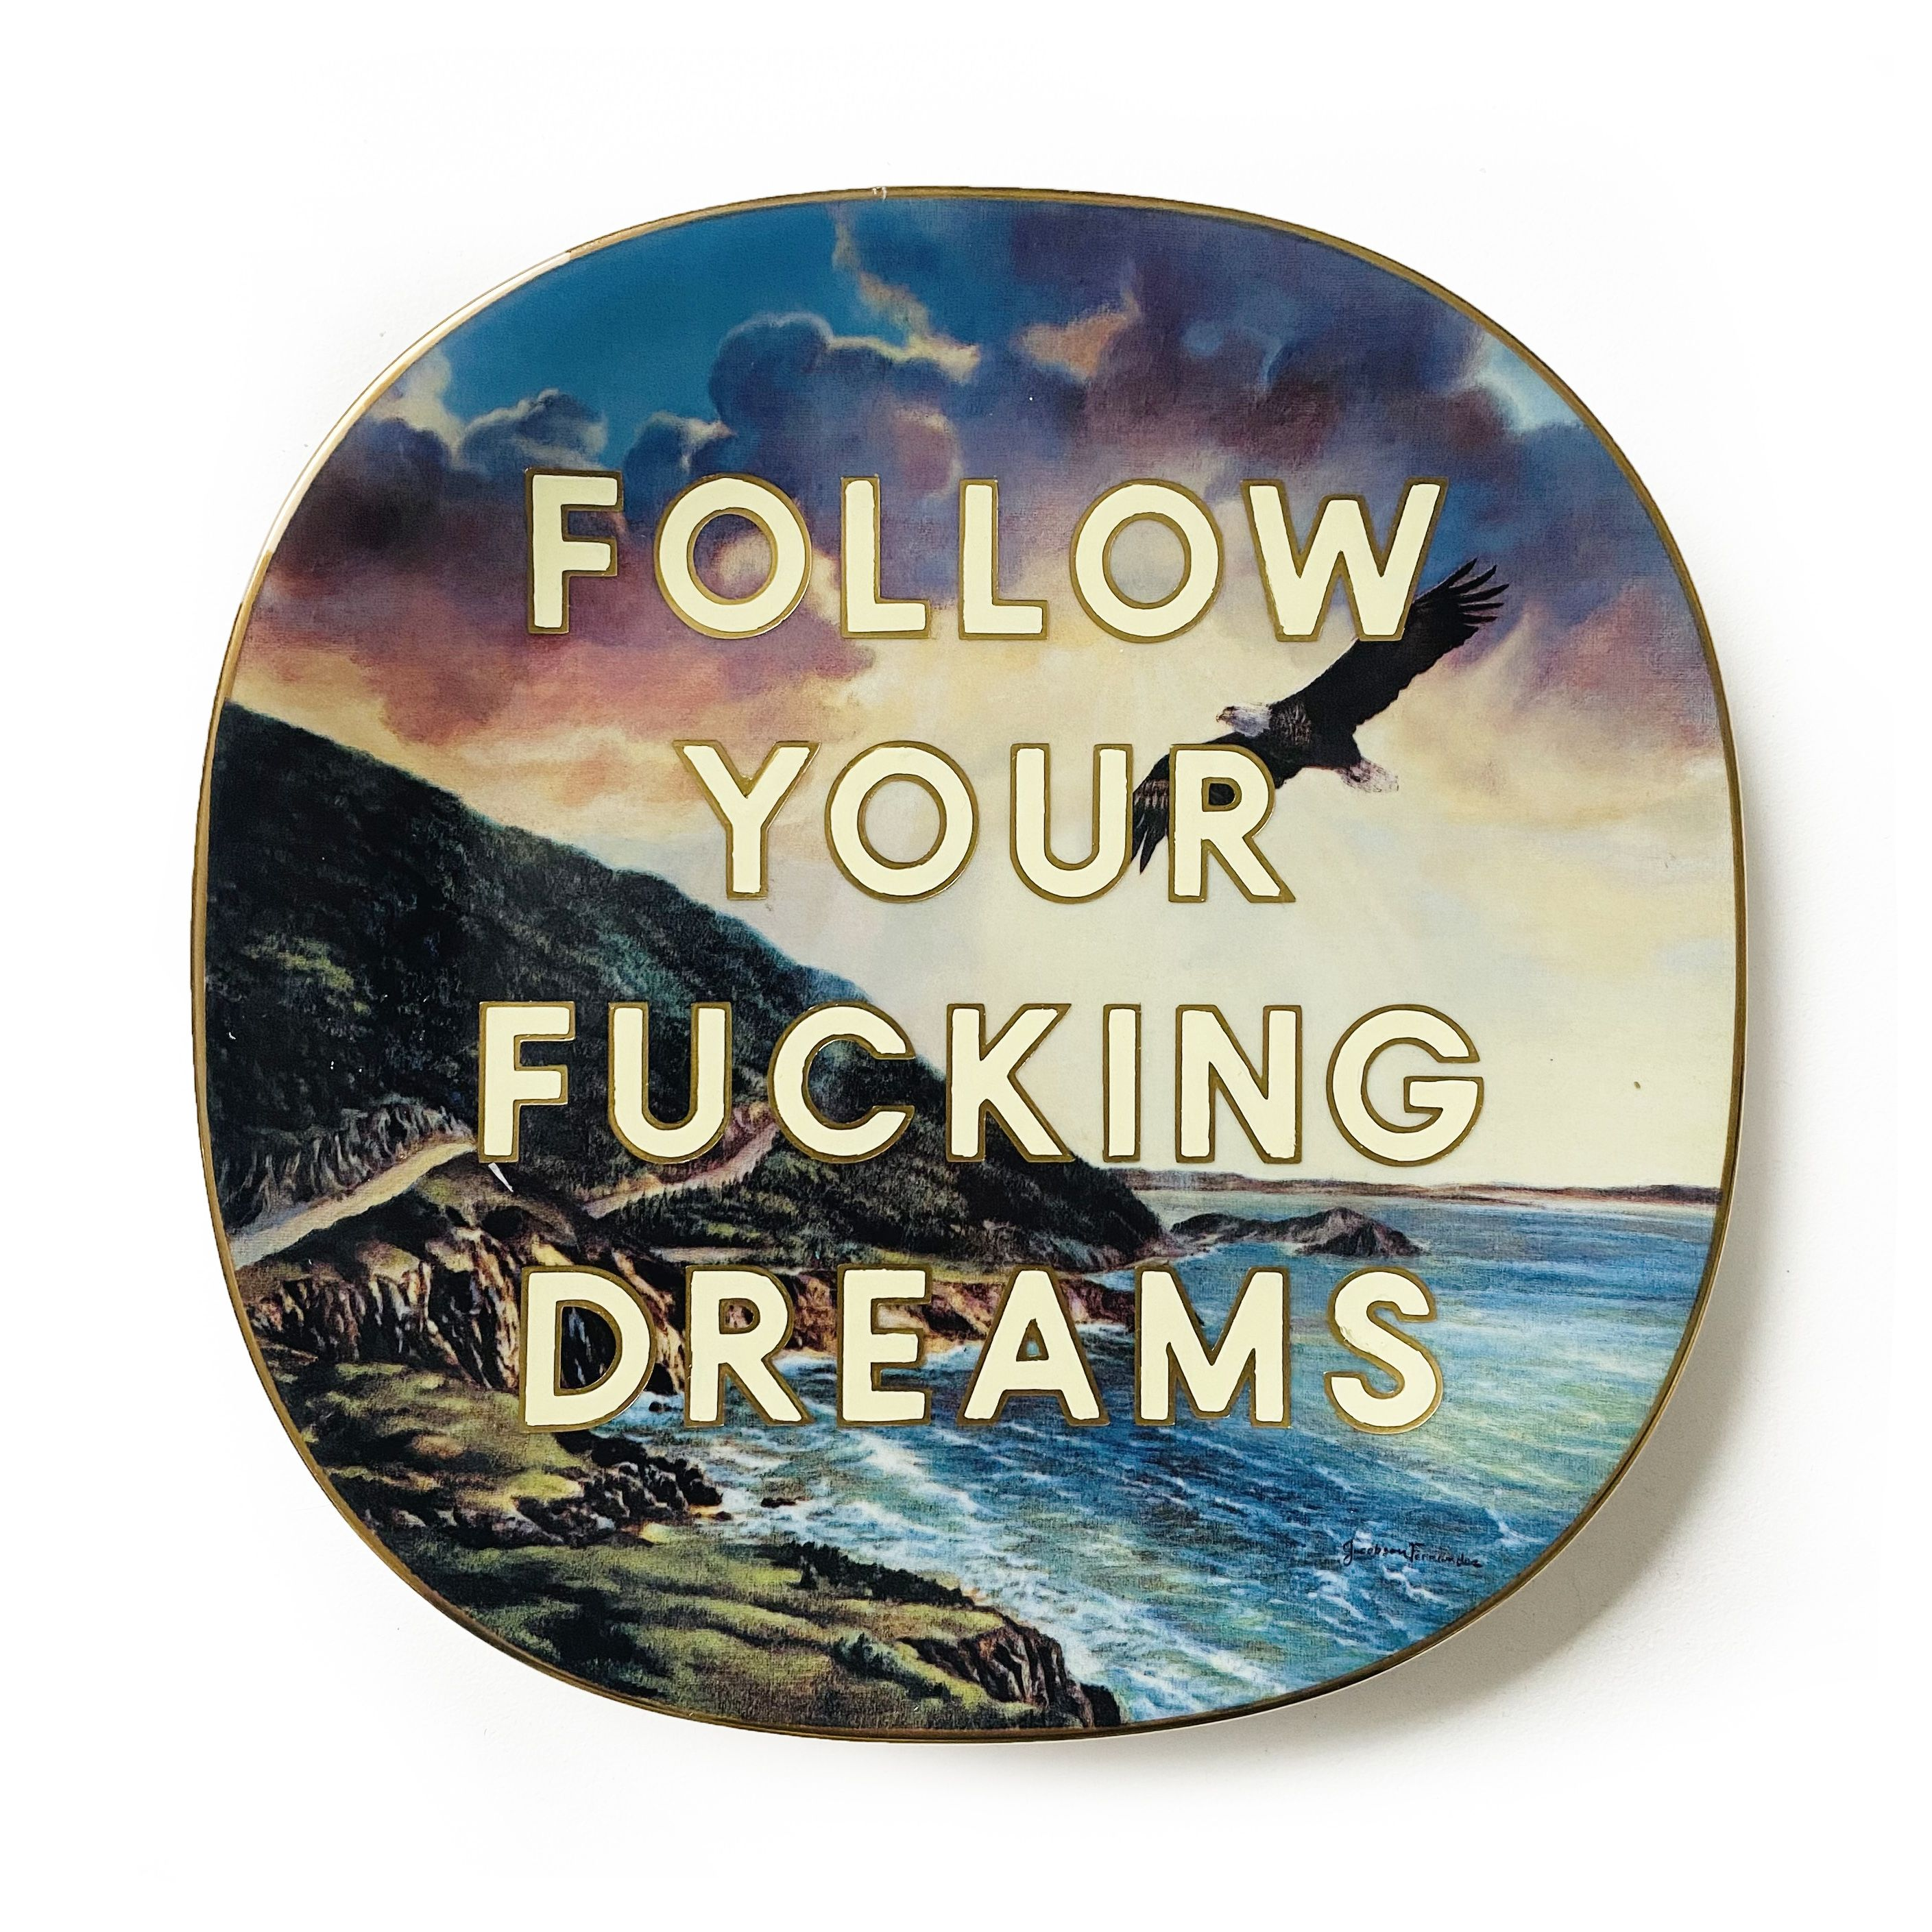 Maggie Hall – Follow Your Fucking Dreams (2020), Enamel on Ceramic Plate, 21.5 × 21.5 cm (8 3/8 × 8 3/8 in)